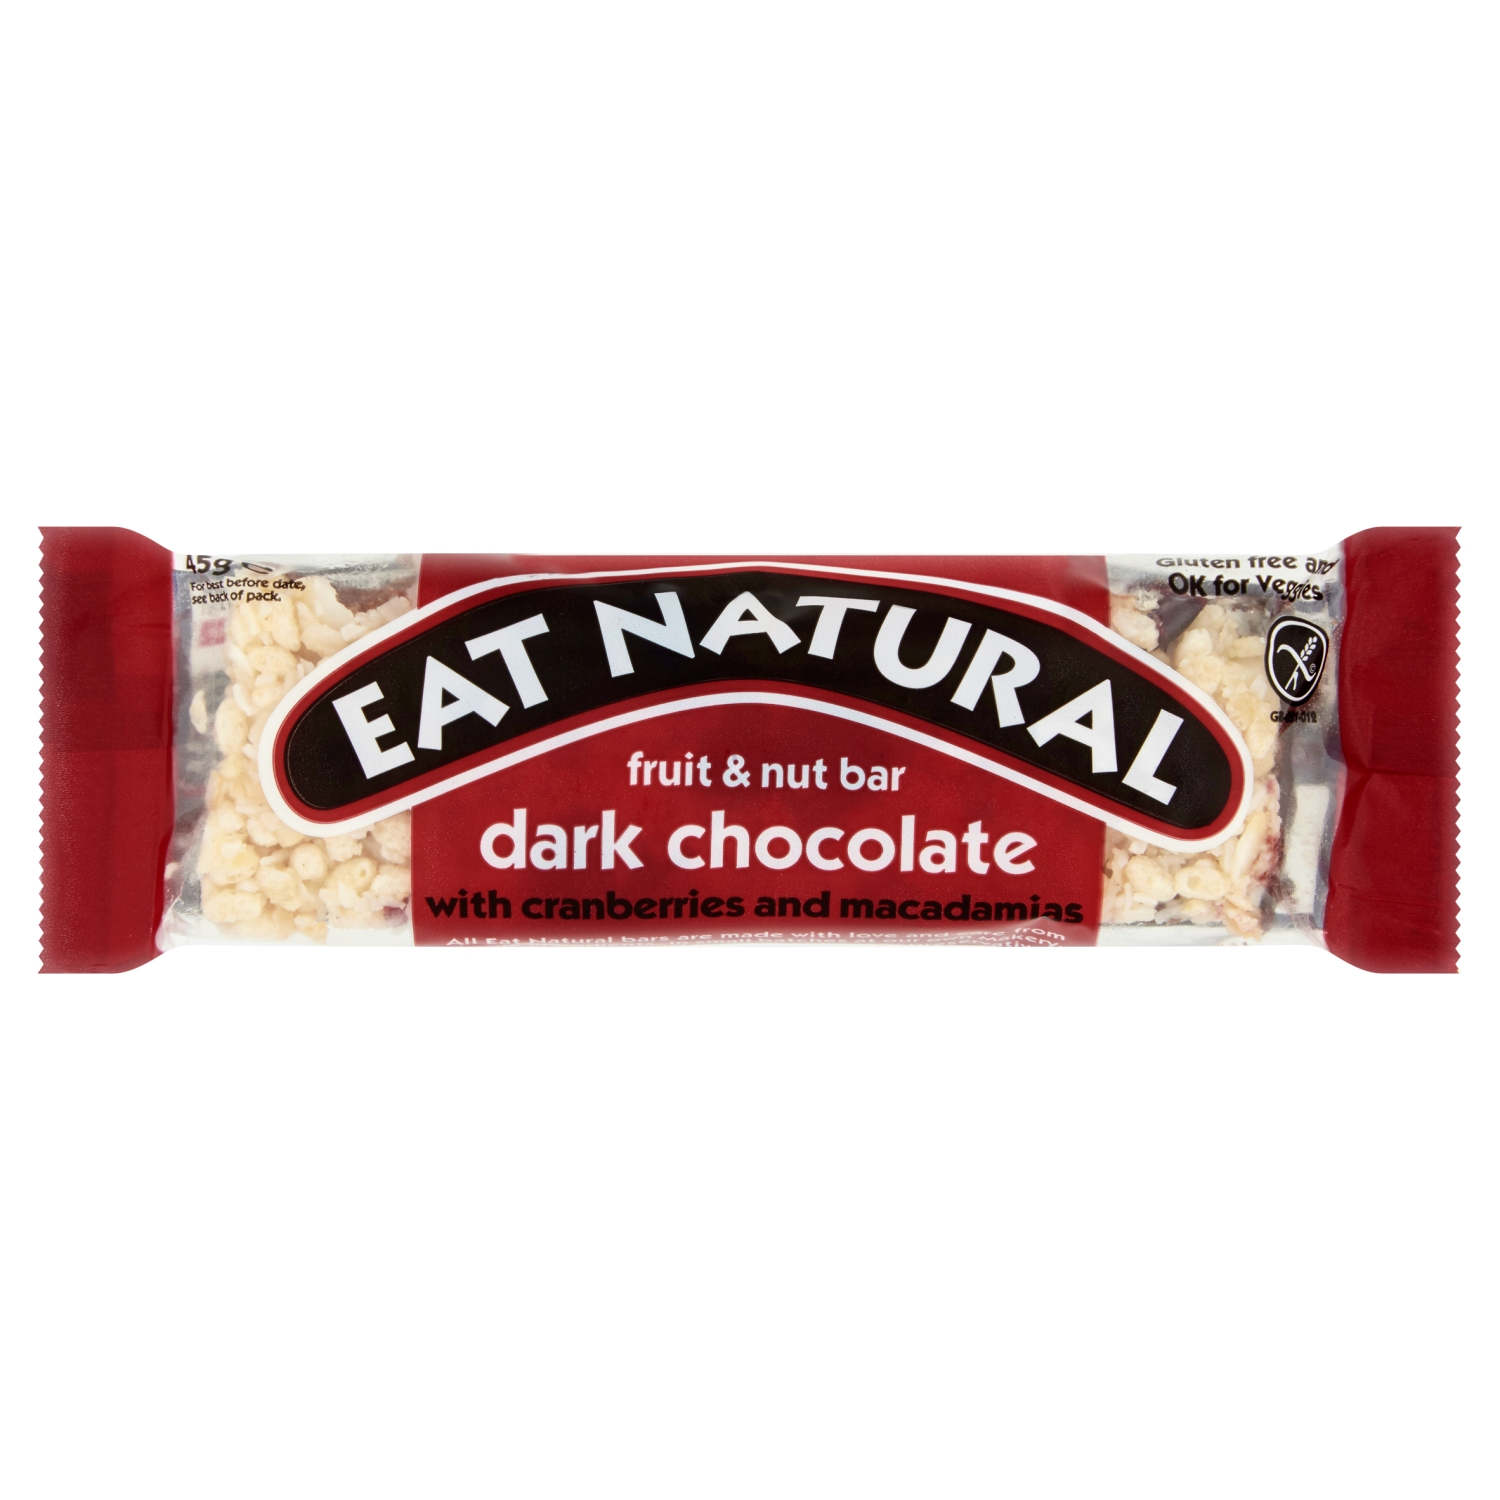 Eat Natural Fruit & Nut Bar Dark Chocolate with Cranberries and Macadamias 45g